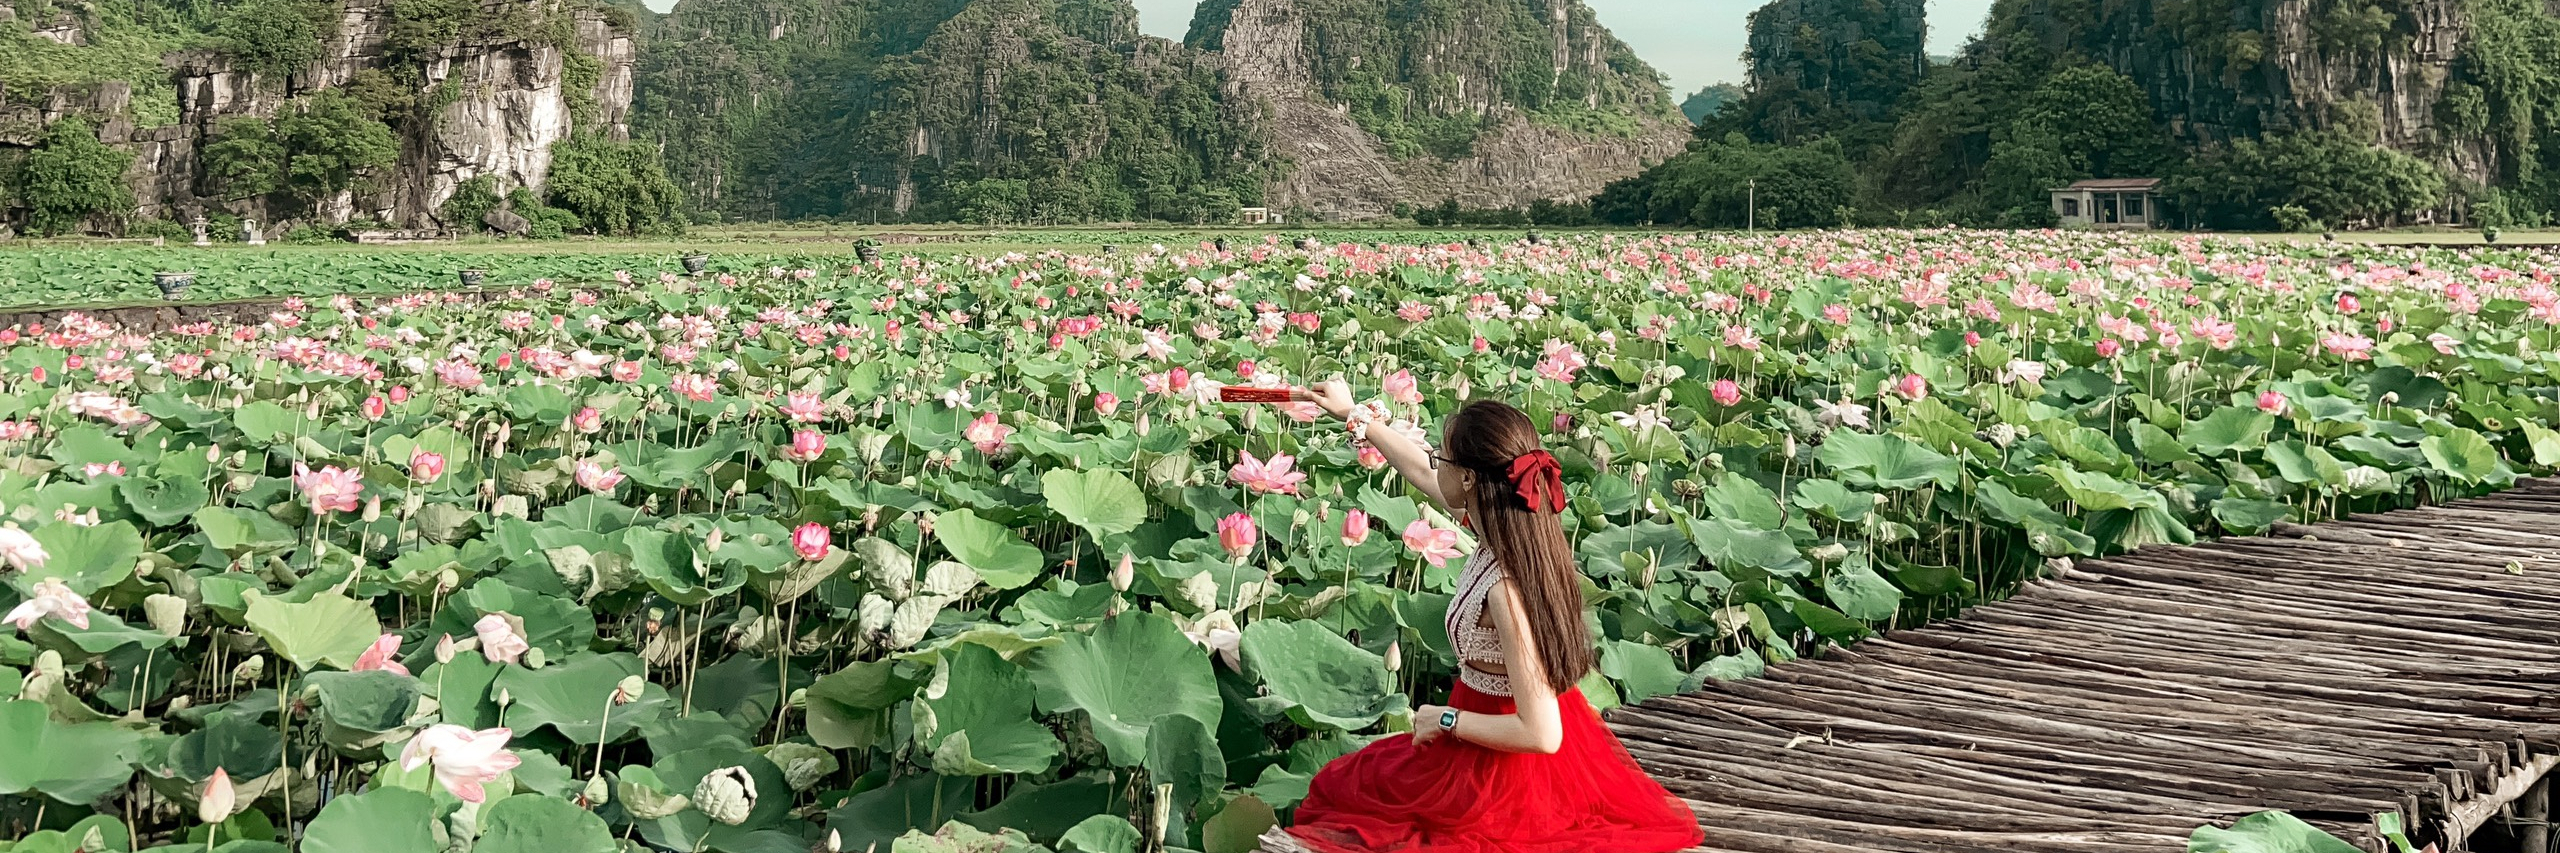 https://gody.vn/blog/12532935681505101494/post/den-hang-mua-ninh-binh-check-in-ho-sen-no-ro-tuyet-dep-7090